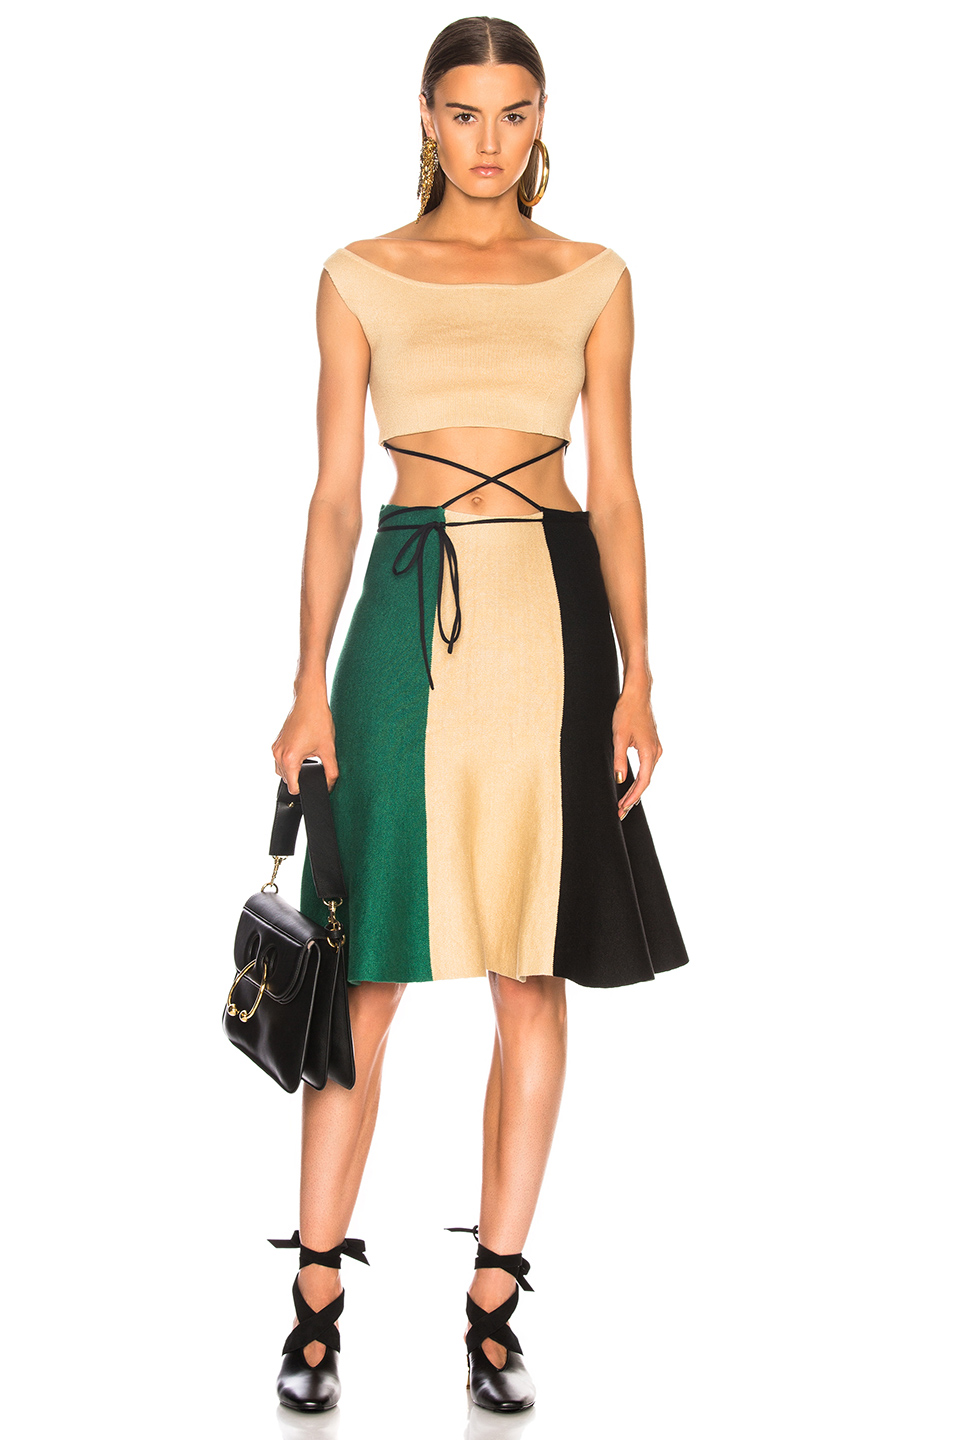 JW Anderson Rustic Tricolor Dress in Emerald | FWRD